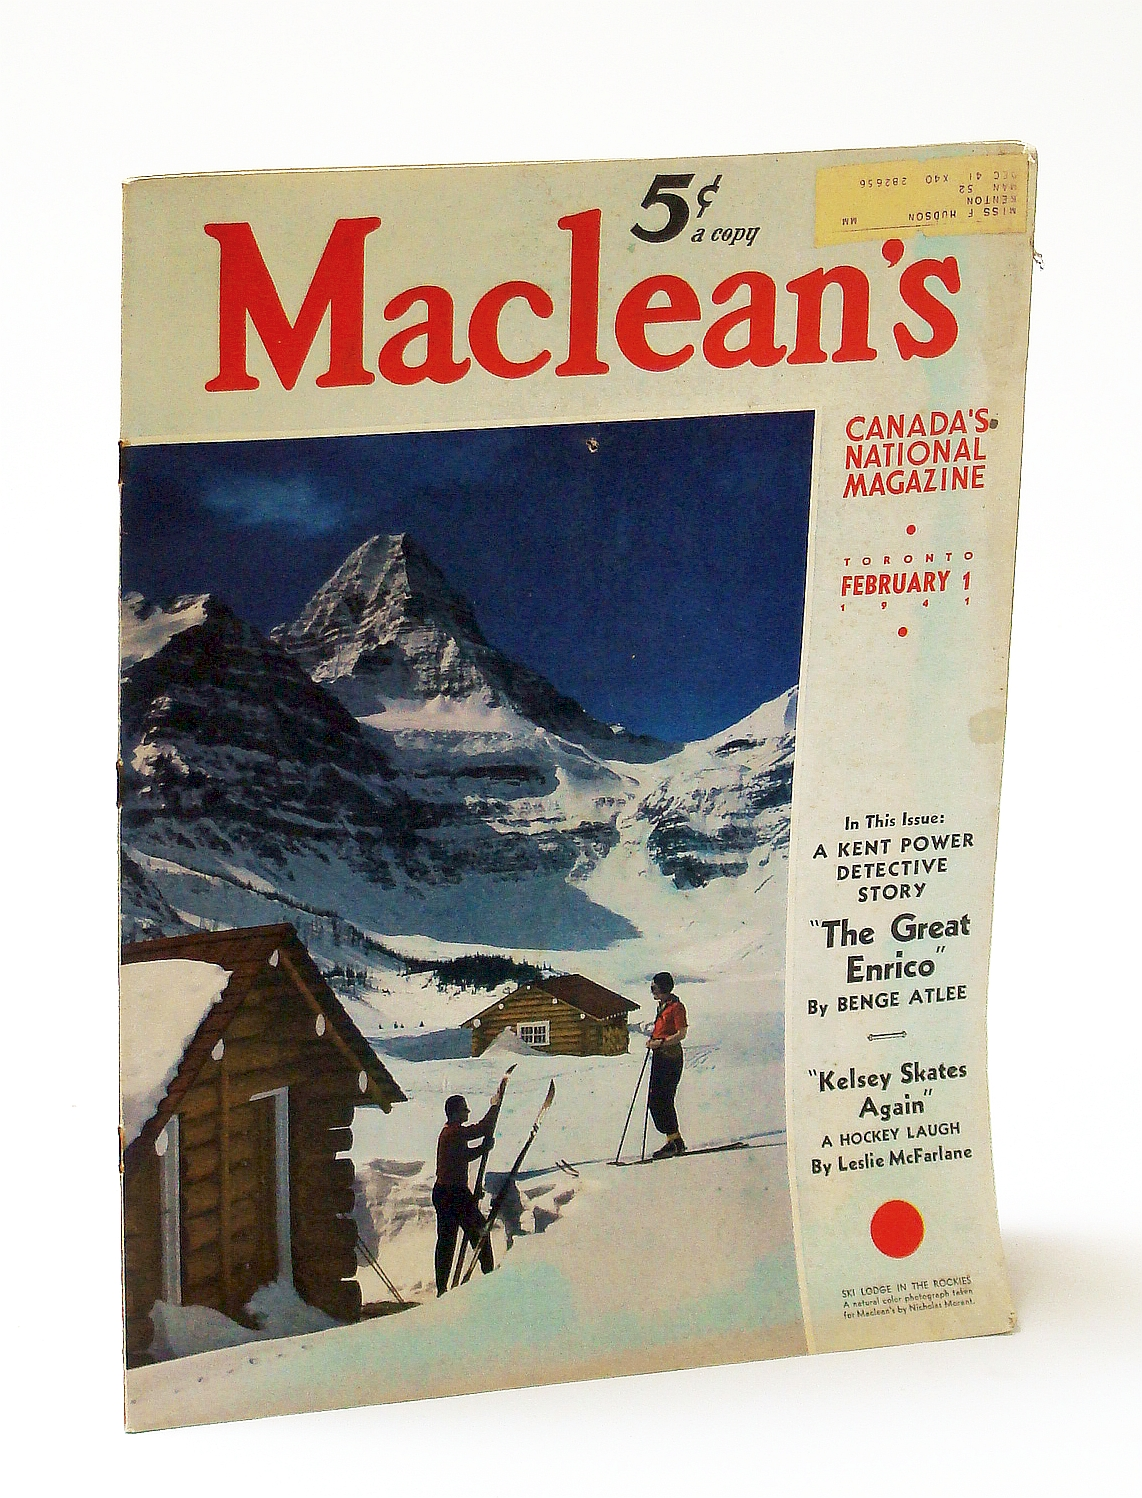 Image for Maclean's, Canada's National Magazine, February (Feb.) 1, 1941, Vol. 54, No. 3 - This is Kingston, Ontario